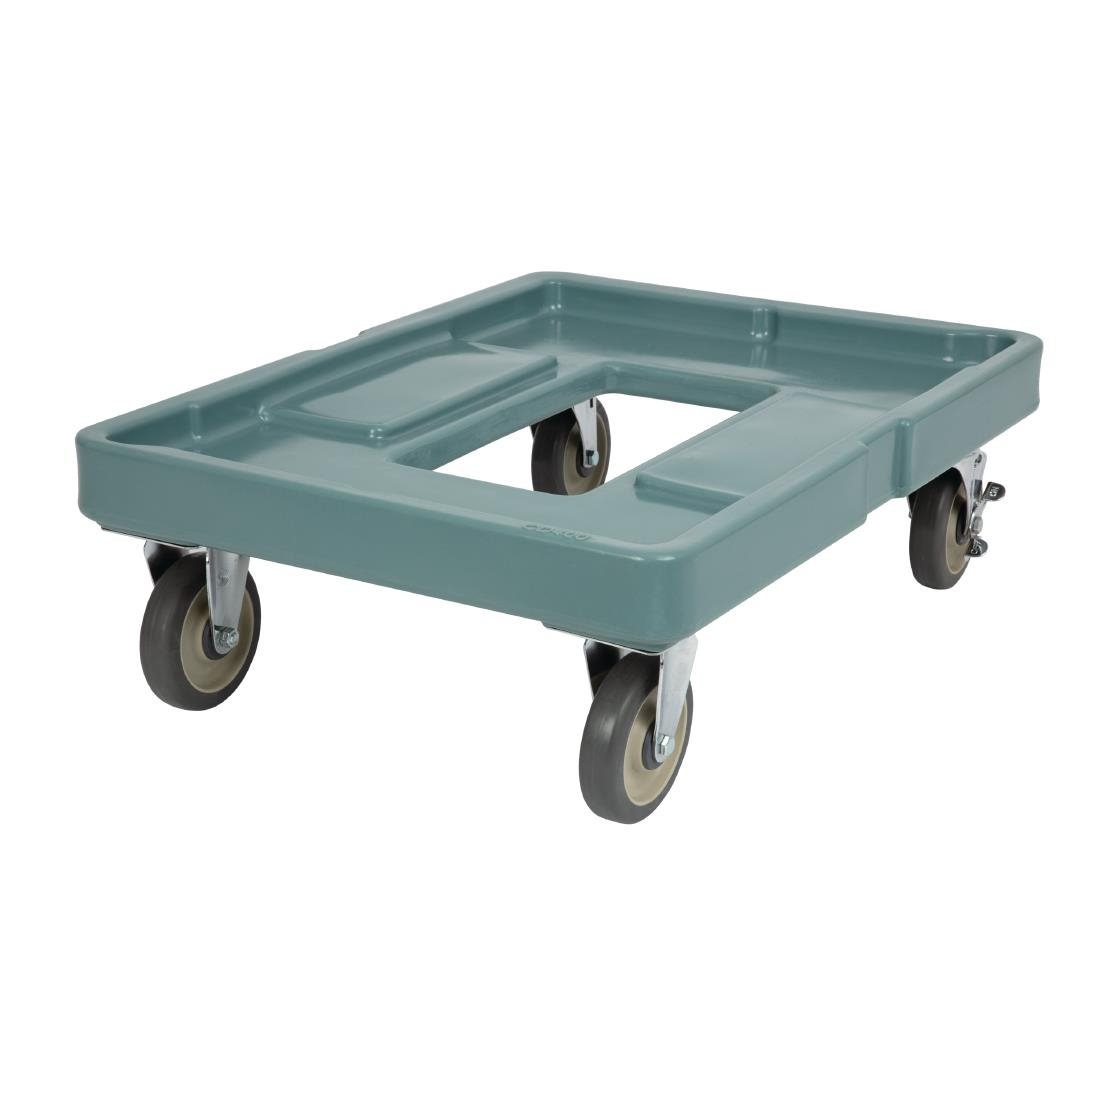 Image of Cambro Camdolly for Cambro Insulated Food Box